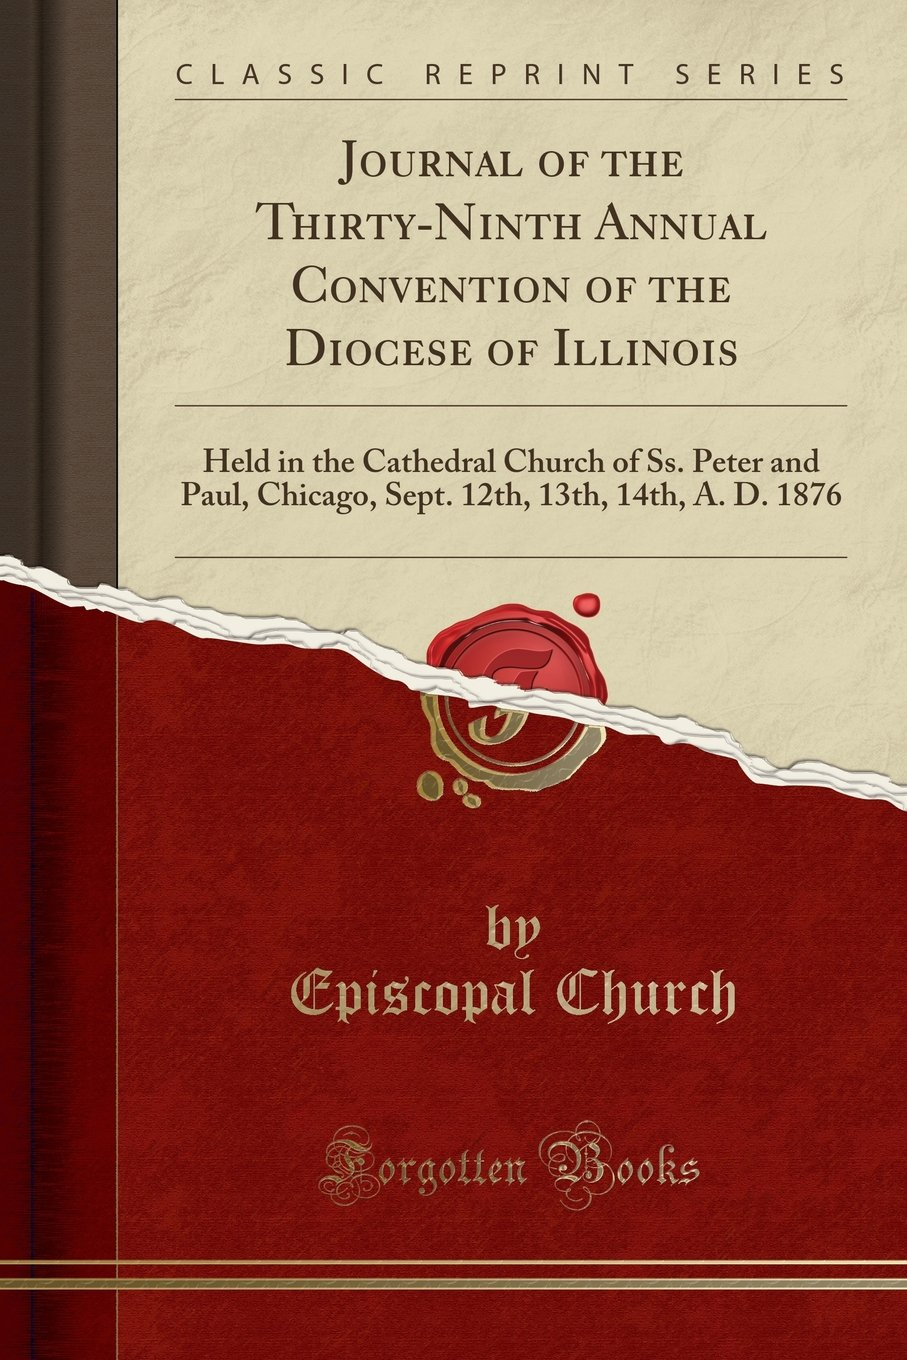 Journal of the Thirty-Ninth Annual Convention of the Diocese of Illinois: Held in the Cathedral Church of Ss. Peter and Paul, Chicago, Sept. 12th, 13th, 14th, A. D. 1876 (Classic Reprint) ebook